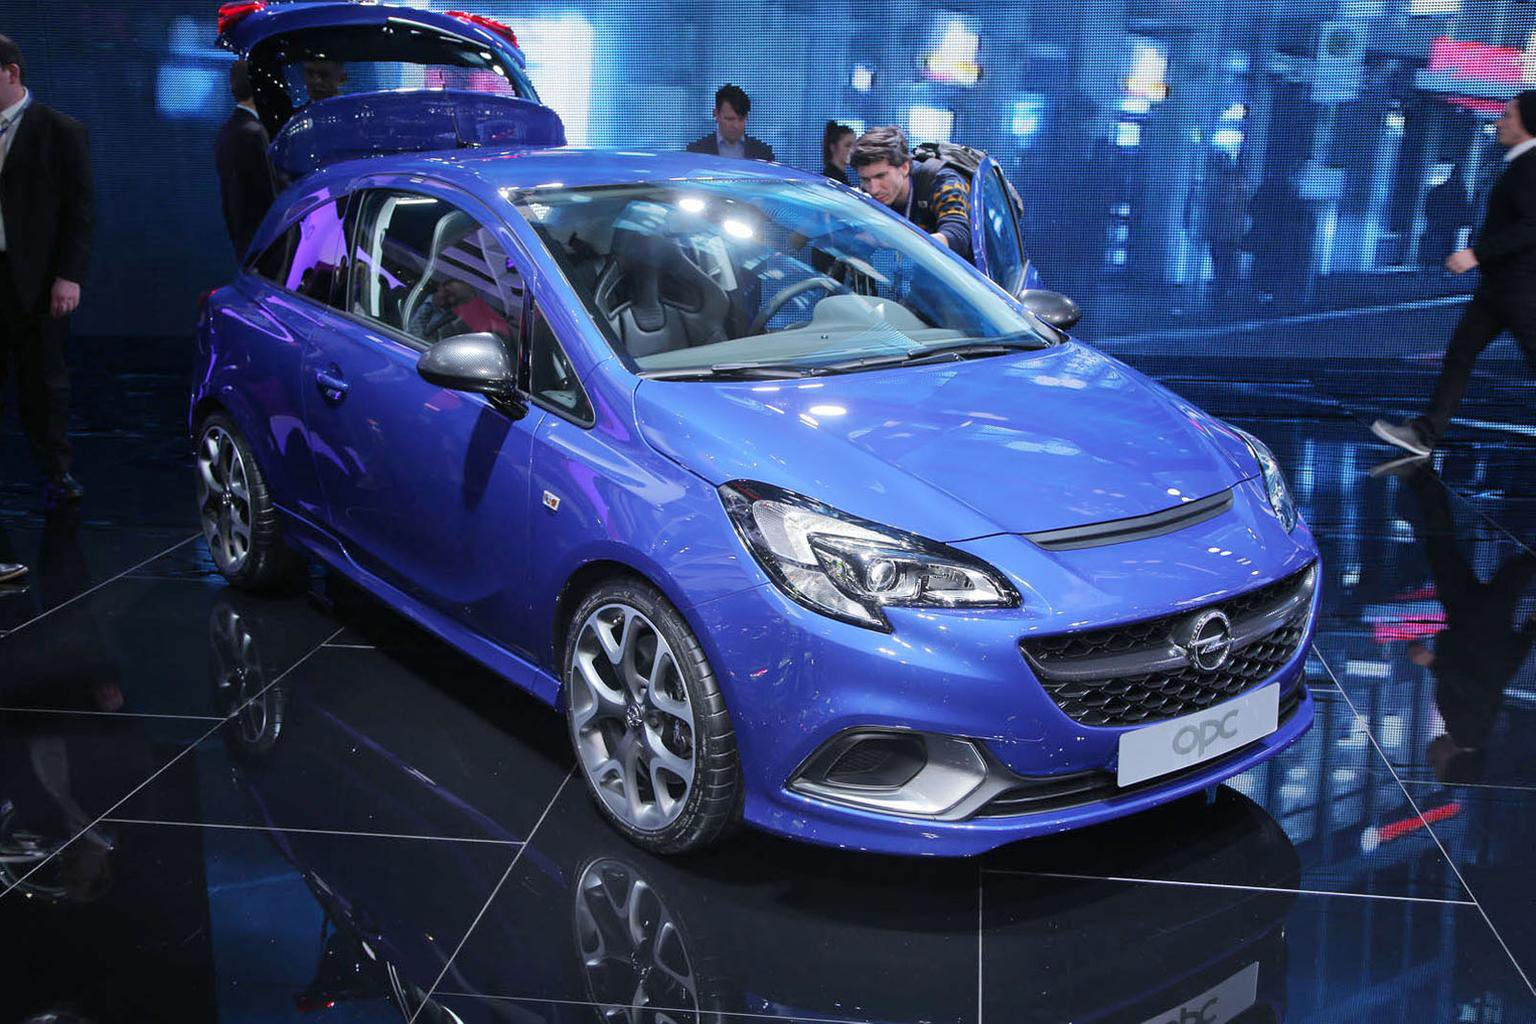 2015 Vauxhall Corsa VXR revealed - pricing, specification and engines